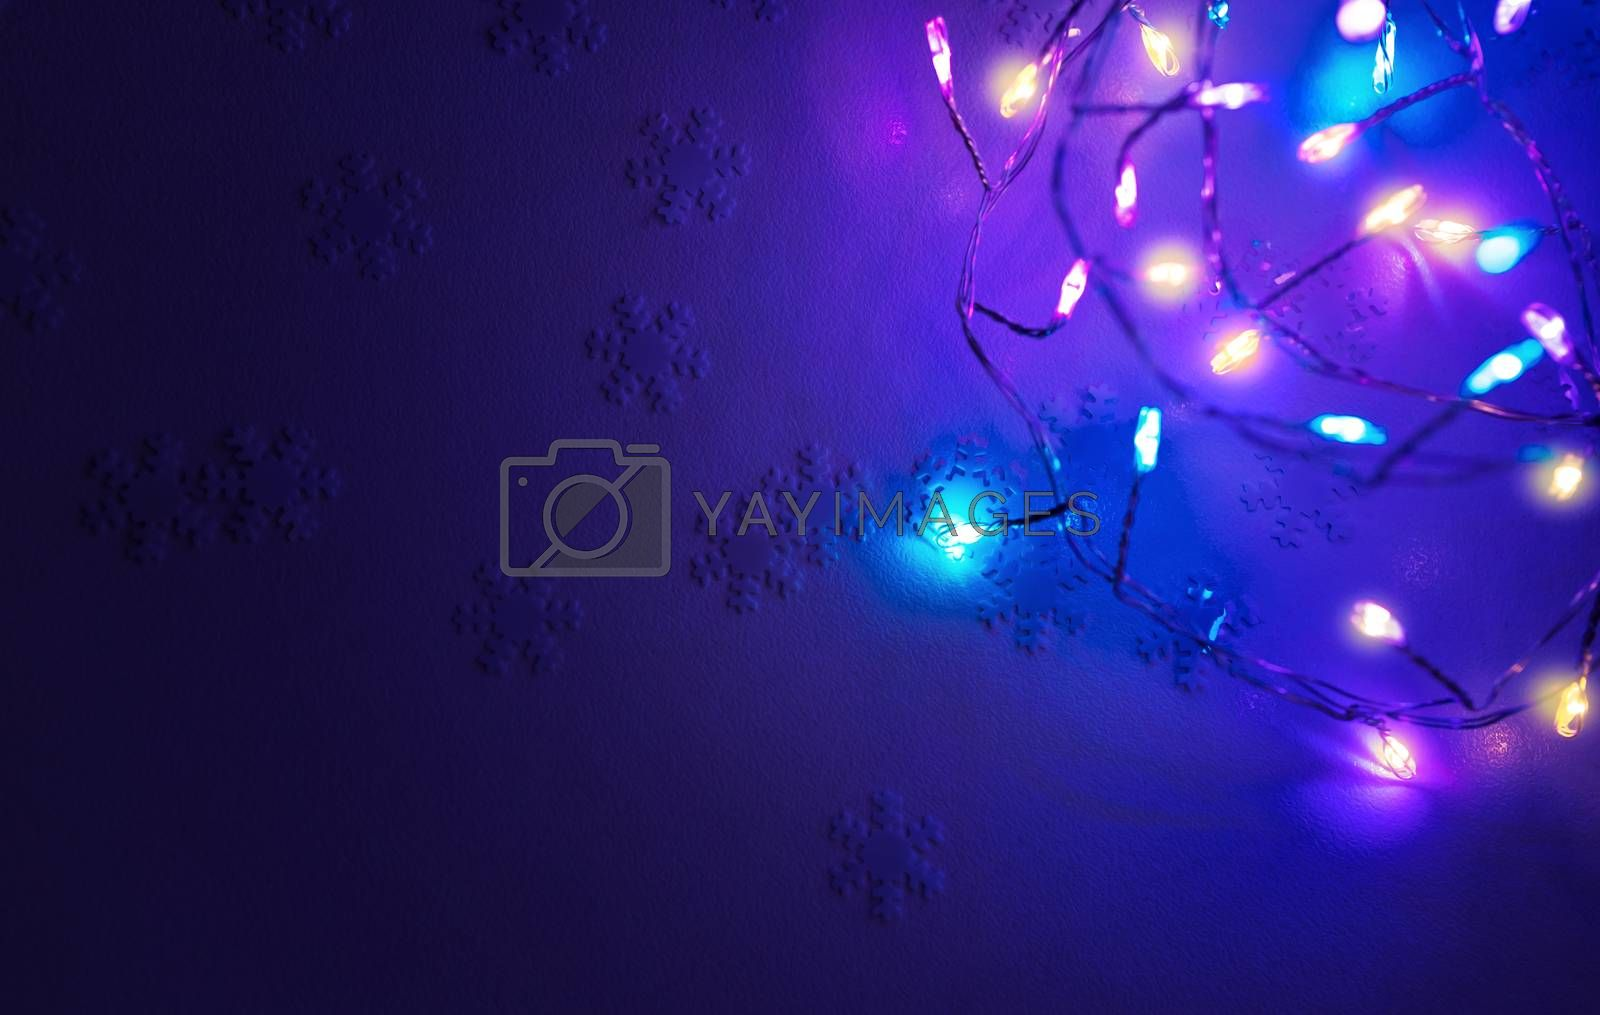 Christmas Background. Snowflake Confetti and Glowing Festoon on Blue Backdrop, Festive Greeting Card, Beautiful Decoration for New Year Celebration.